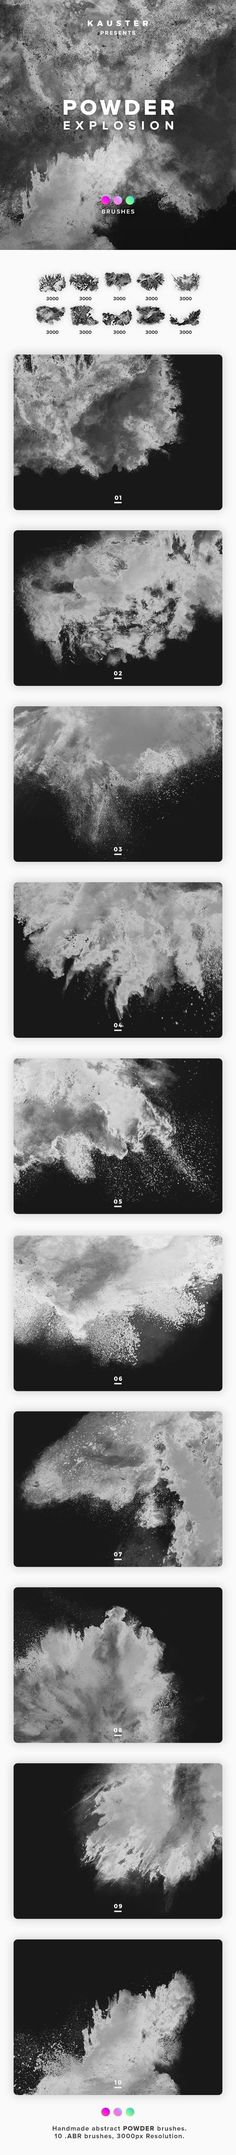 Buy Powder Explosion Brushes by kauster- on GraphicRiver. Powder Explosion Brushes This pack includes 10 Powder Explosion Brushes. Suitable for printing, web design, banners,. Adobe Photoshop, Photoshop Actions For Photographers, Best Photoshop Actions, Photoshop Presets, Photoshop Brushes, Web Design, Graphic Design, Photo Manipulation, Artist At Work